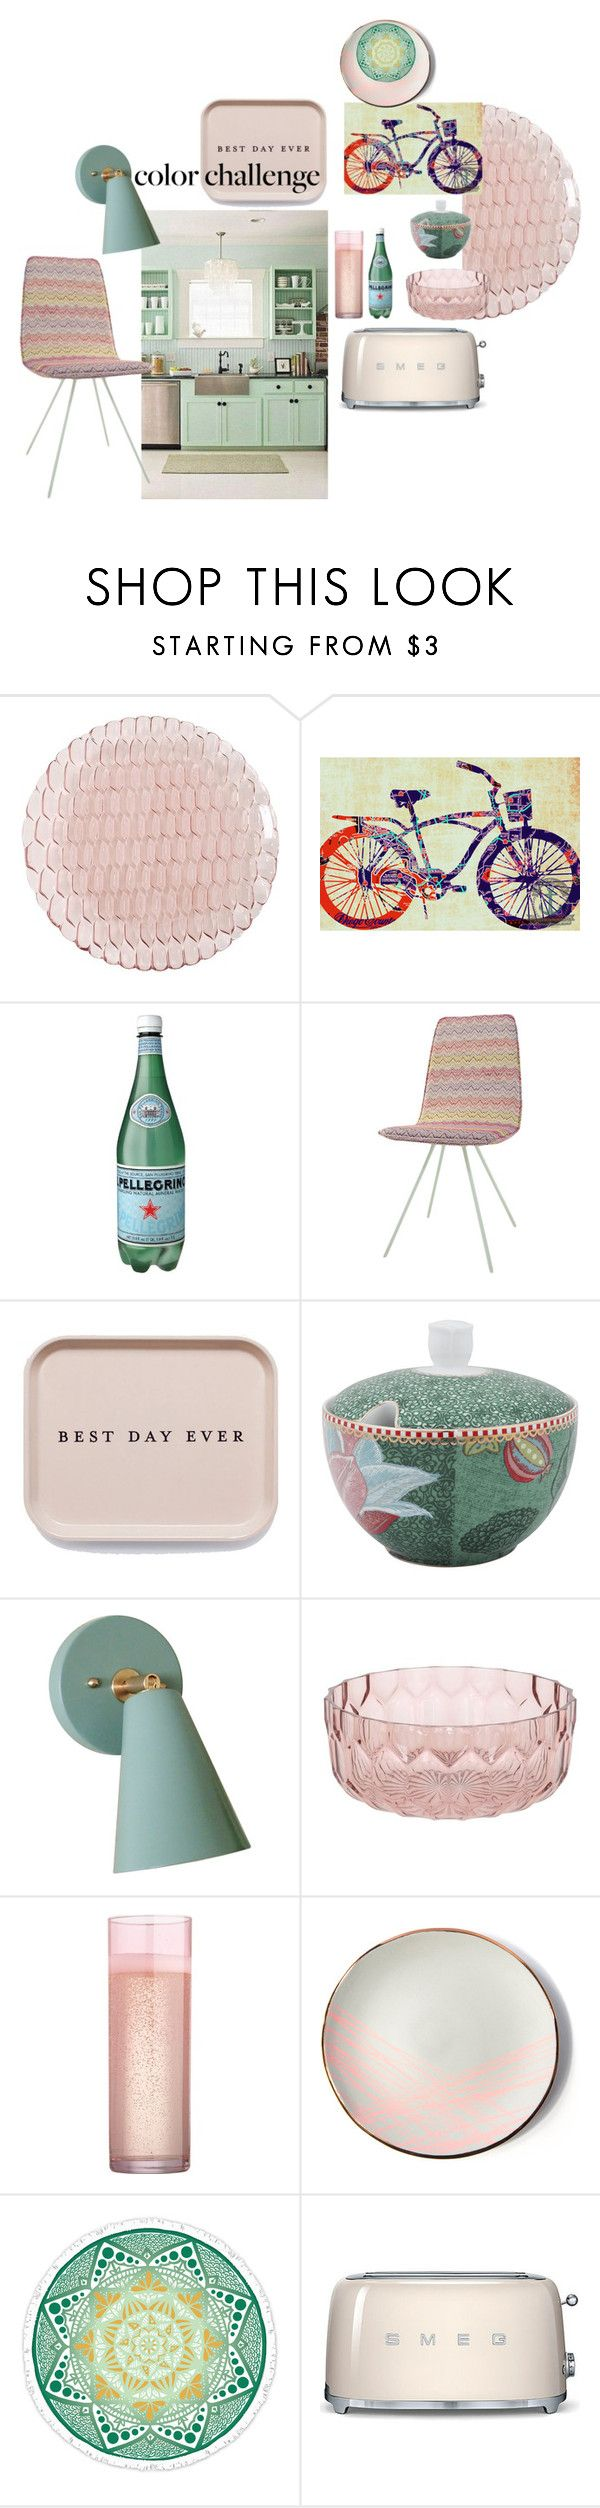 """mdm blush-green by roxariaone"" by roxariaone ❤ liked on Polyvore featuring interior, interiors, interior design, home, home decor, interior decorating, Kartell in Tavola, PiP Studio, Sarah Cihat and Smeg"